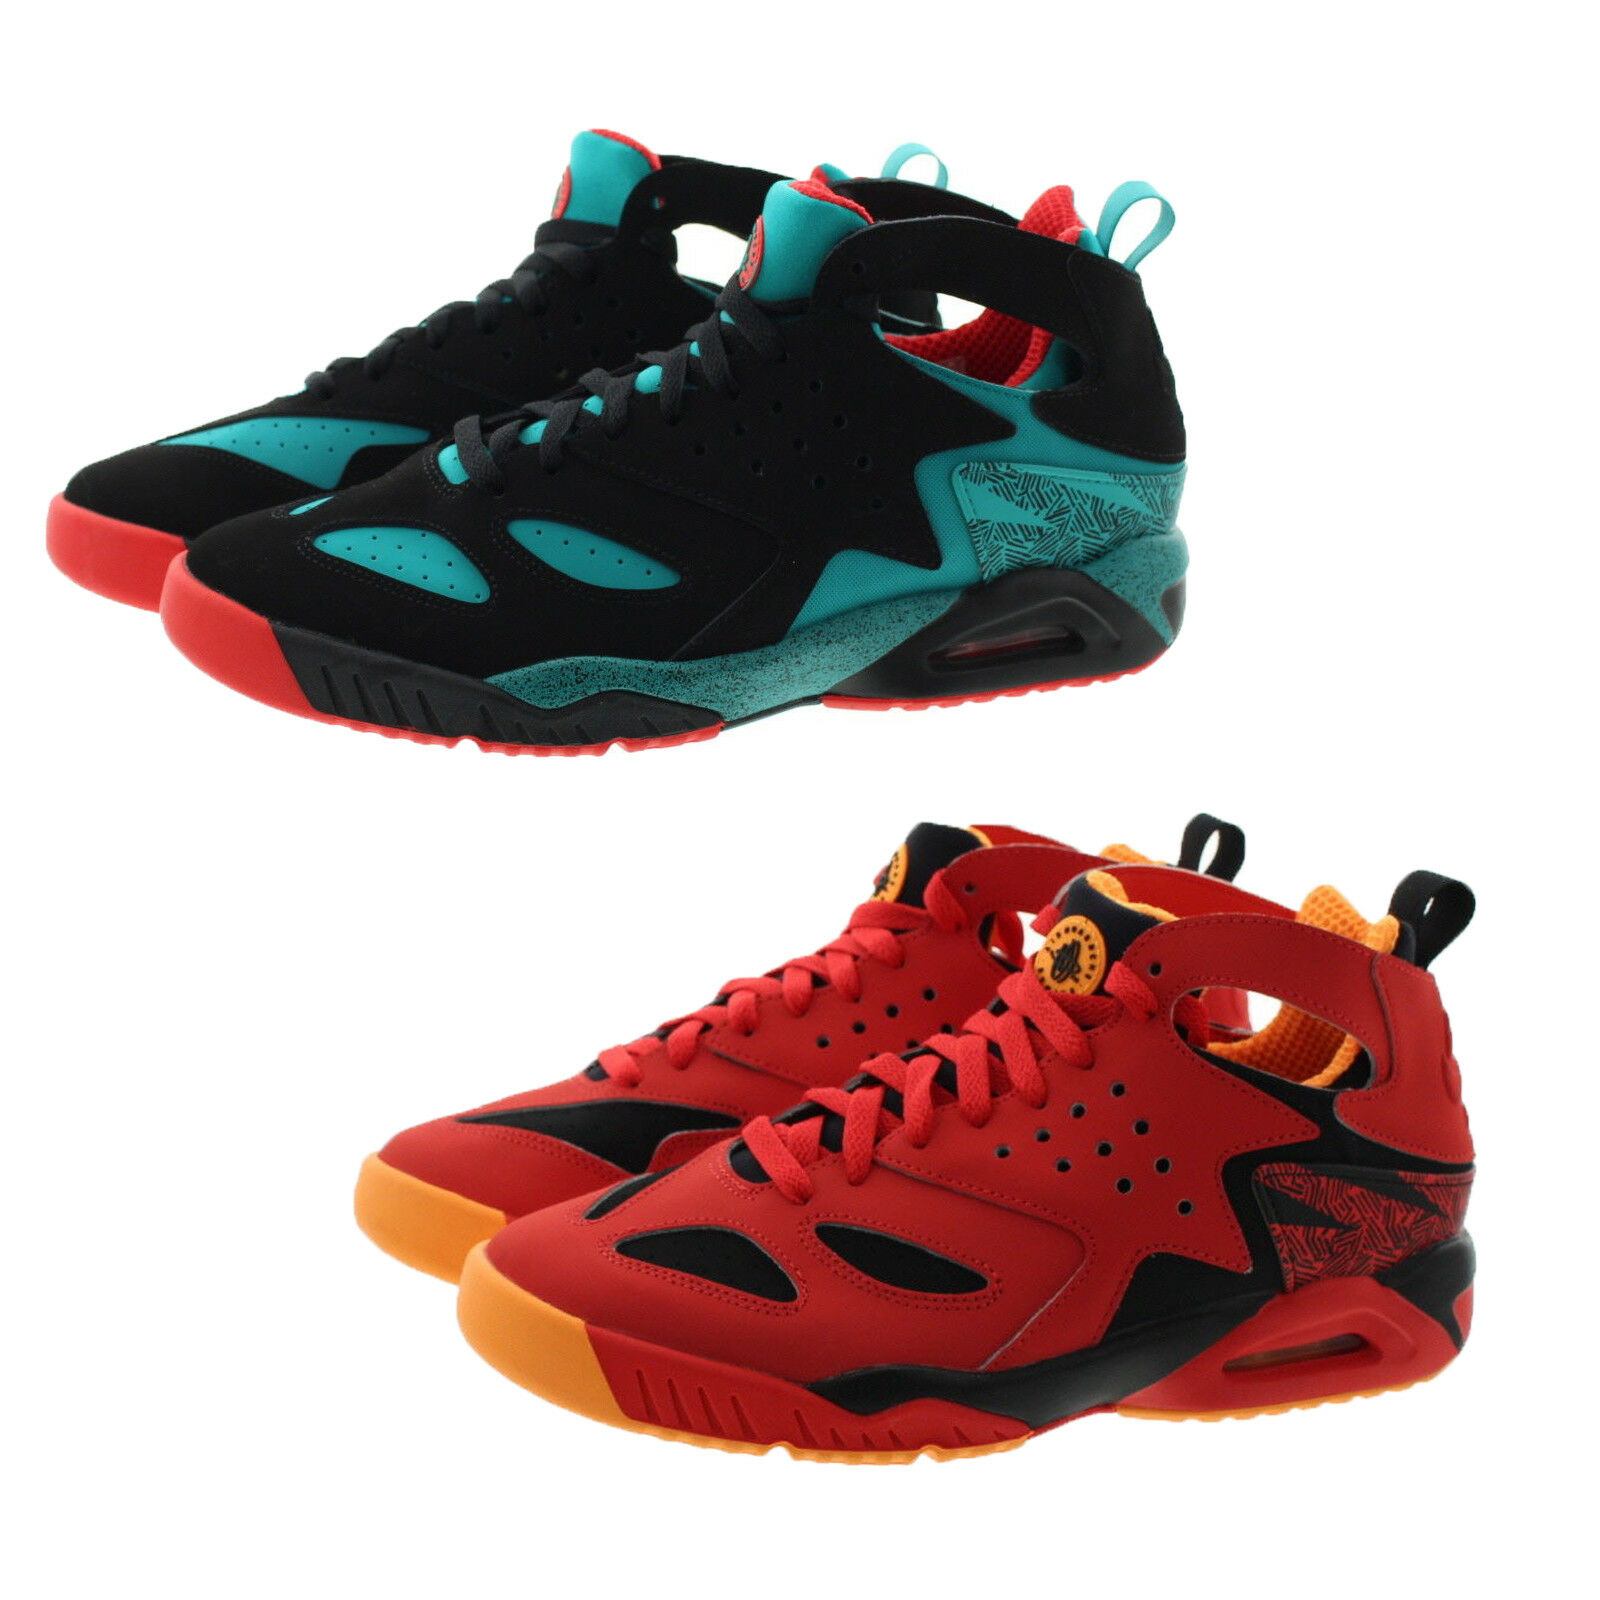 Nike 630957 Mens Air Tech Challenge Huarache Mid Top Athletic shoes Sneakers